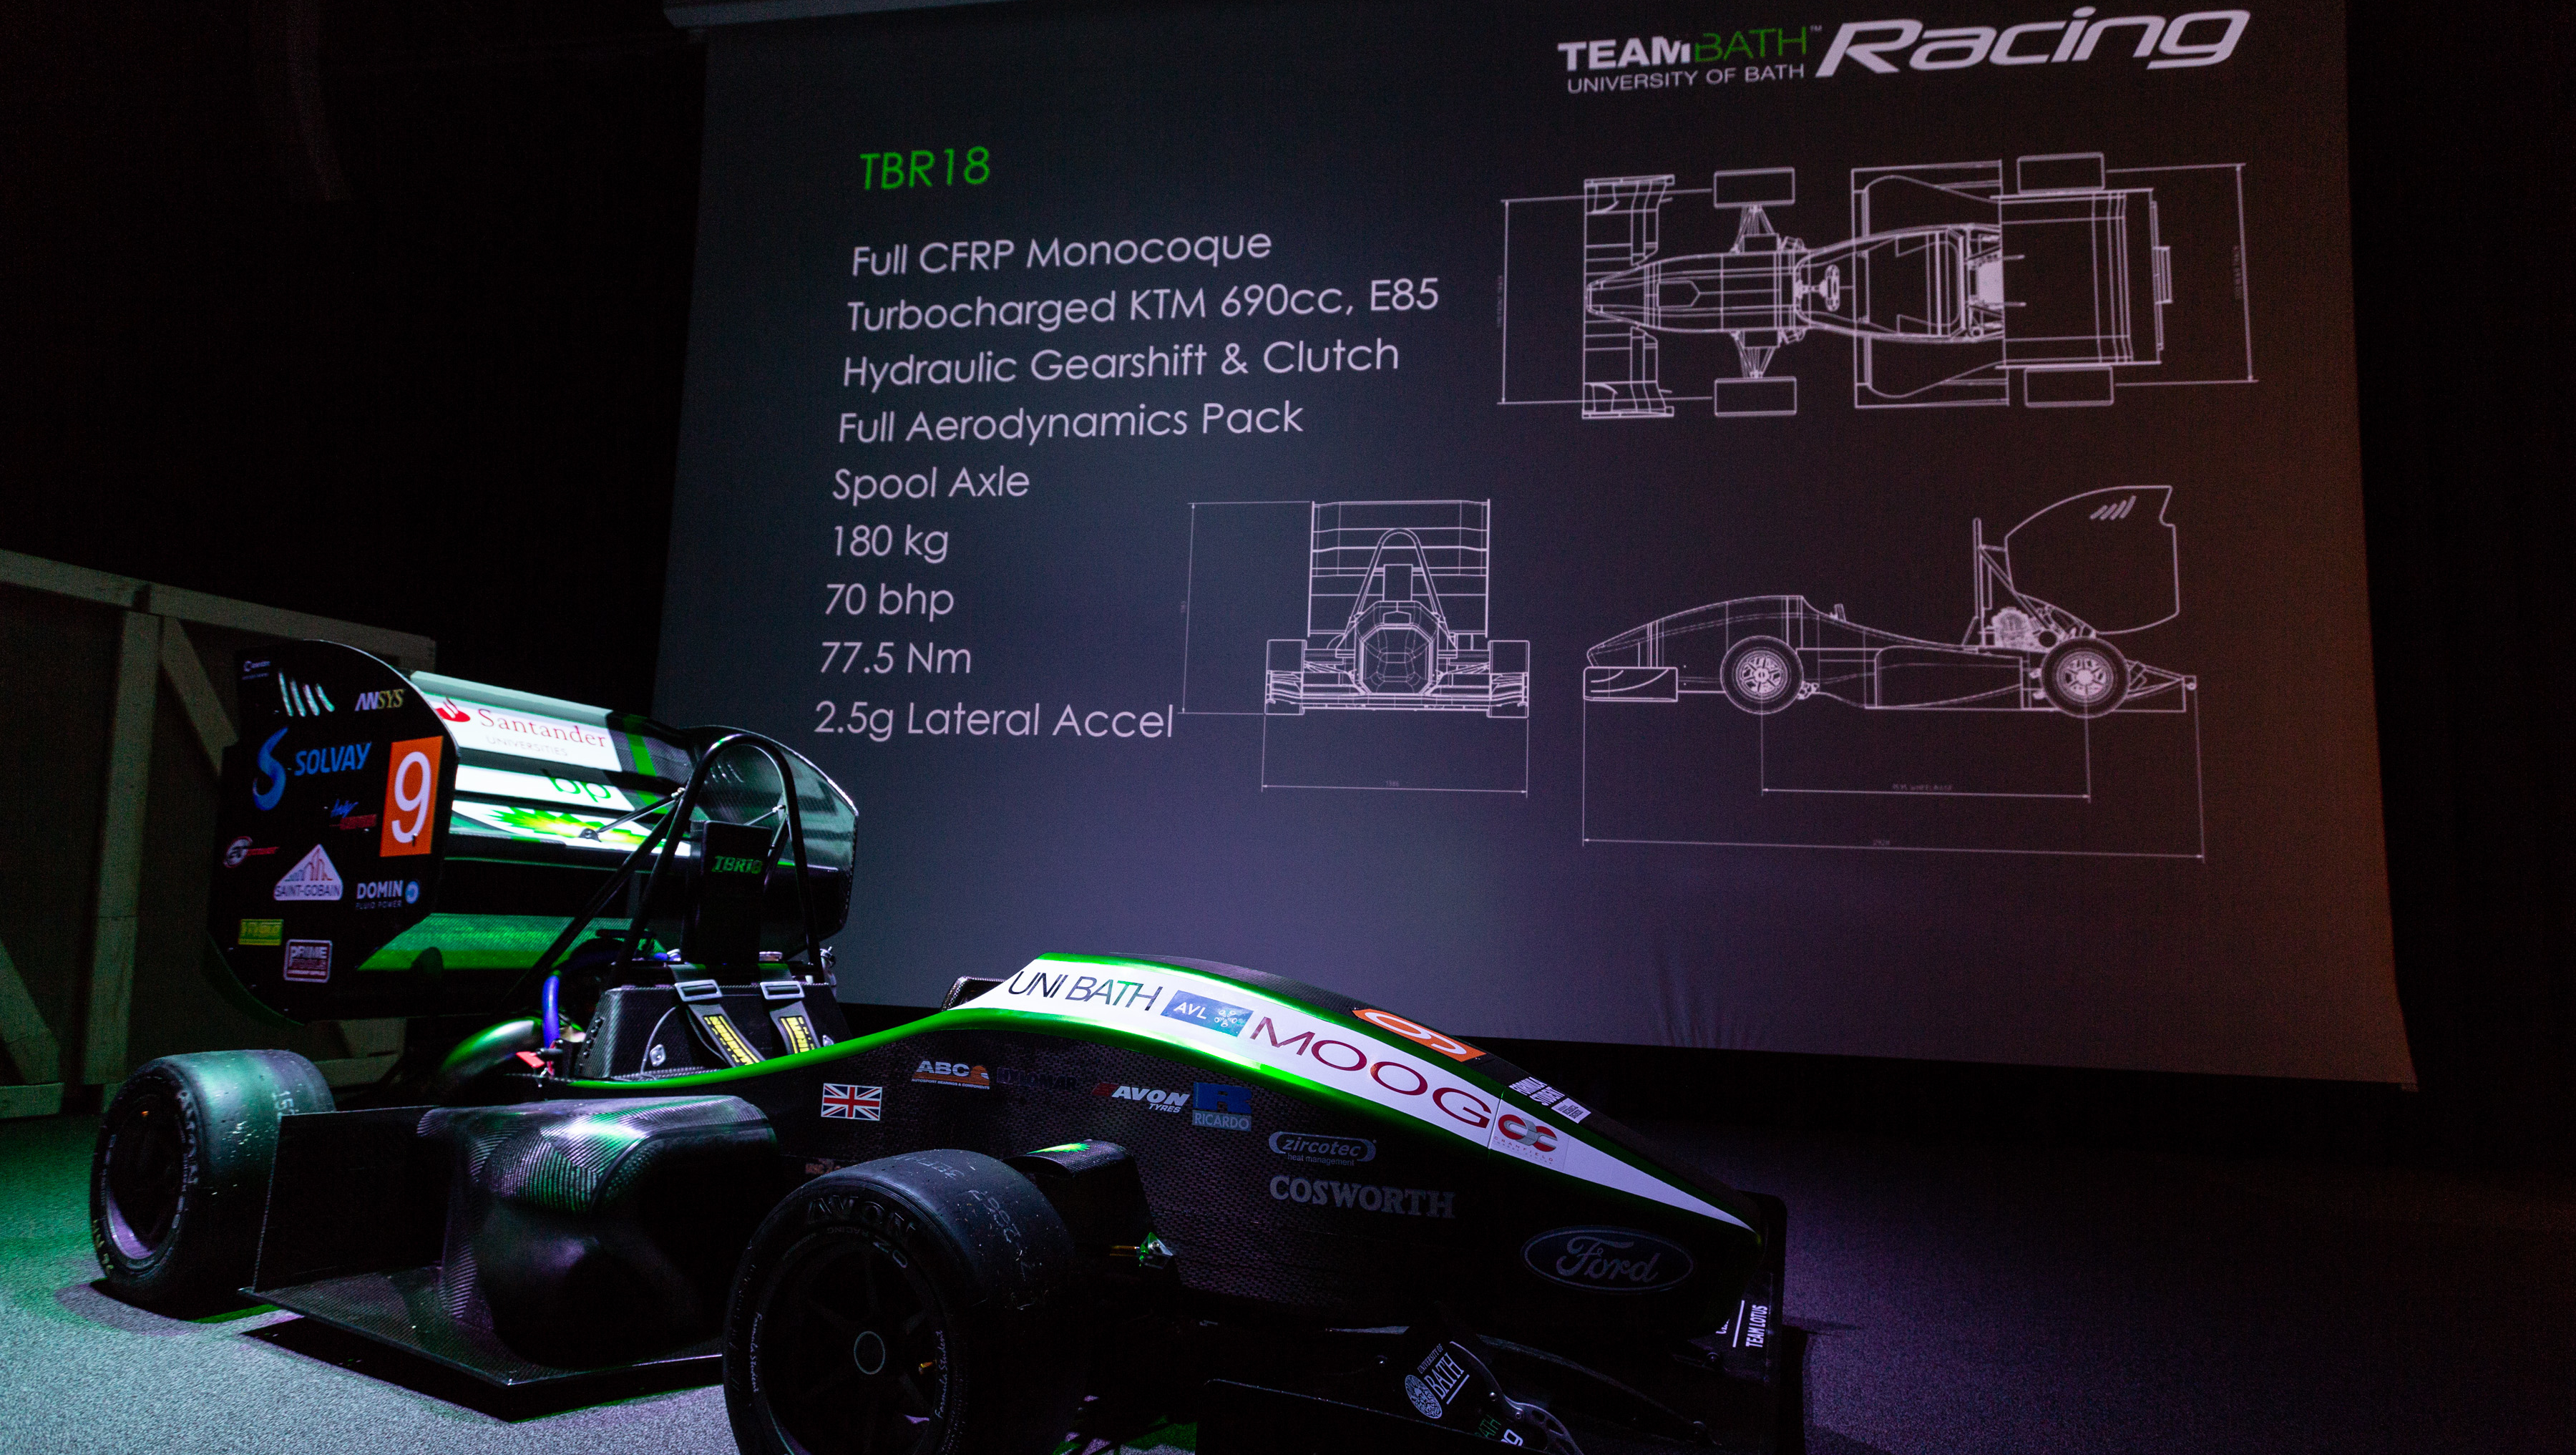 The University of Bath's Formula Student combustion racing car team, TBR, has sets its sights on winning this year's Formula Student UK event at Silverstone in July.